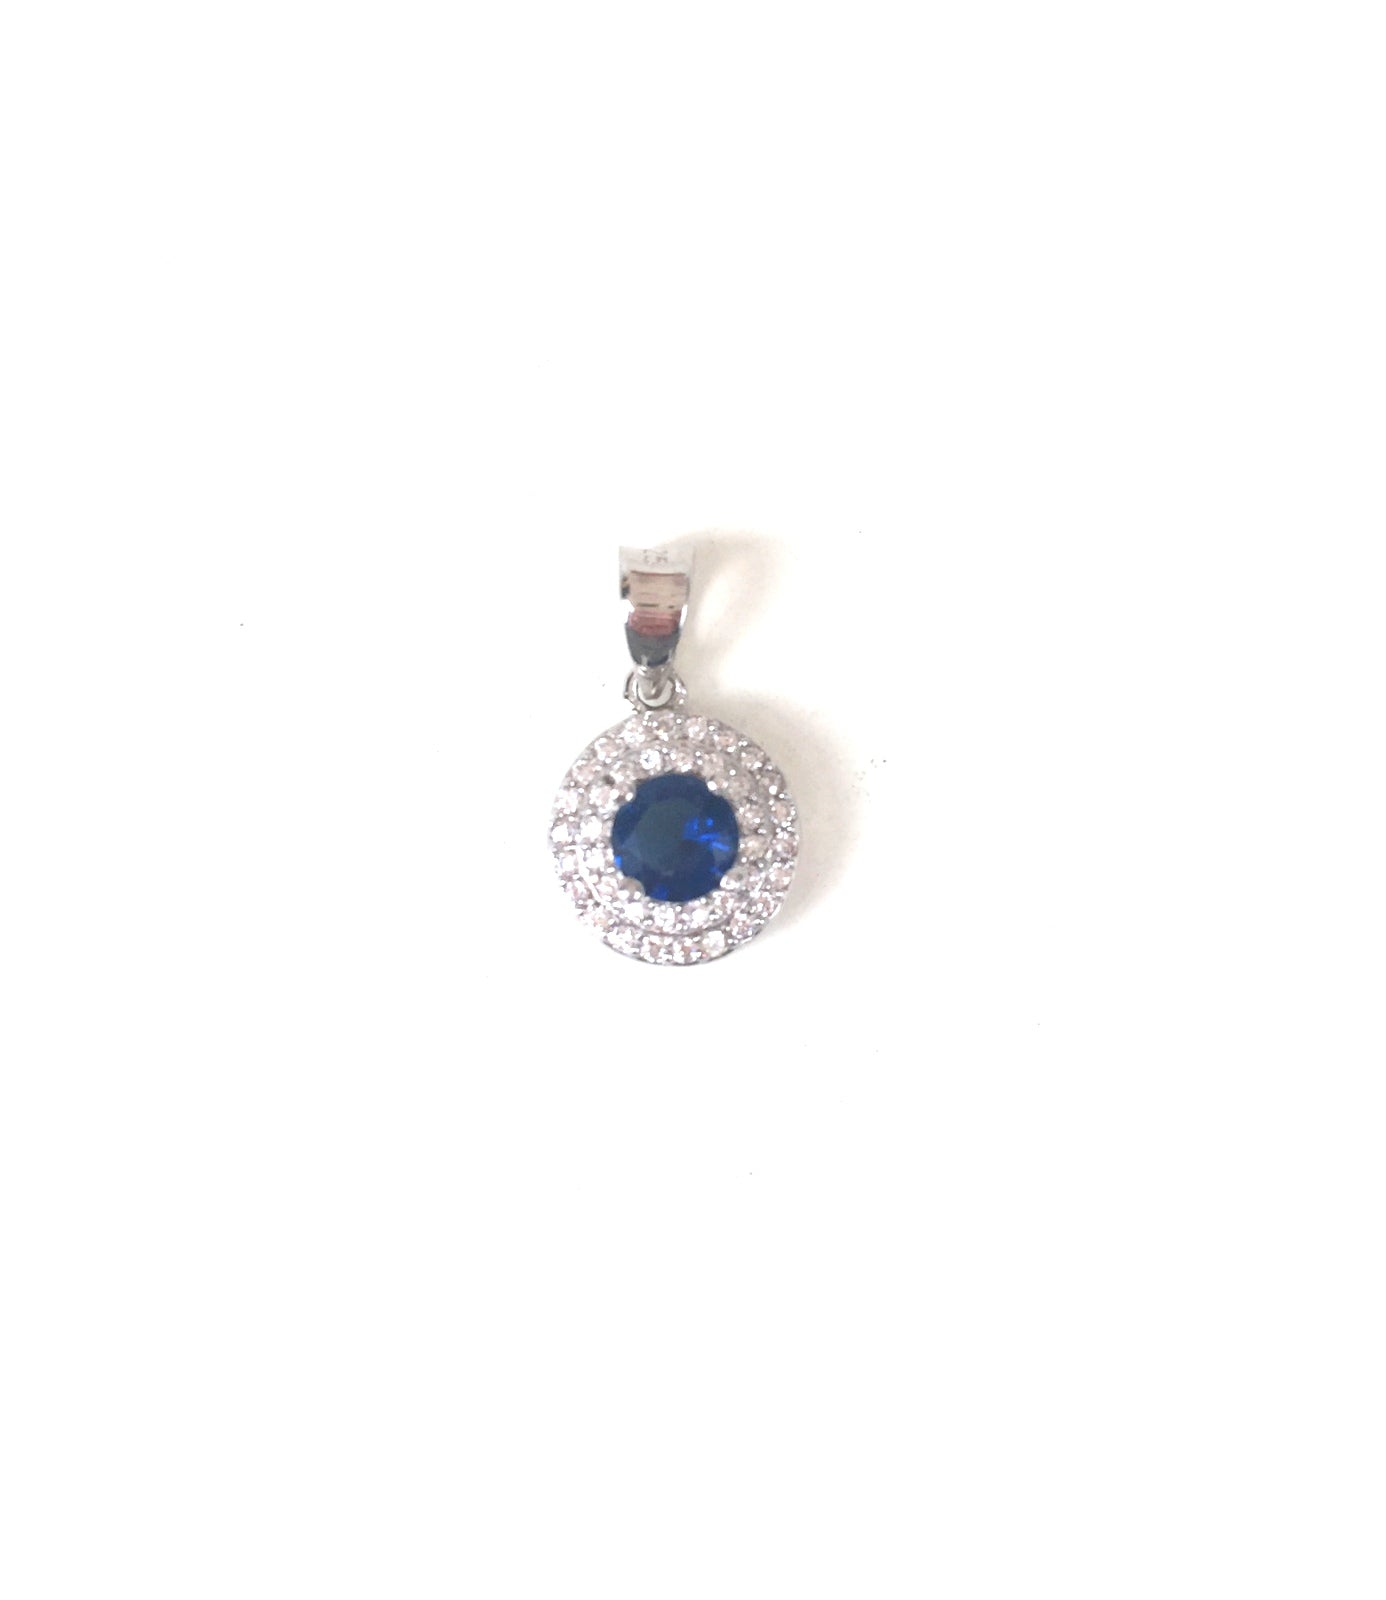 CLASSIC DARK BLUE PAVE CZ STERLING SILVER PENDANT